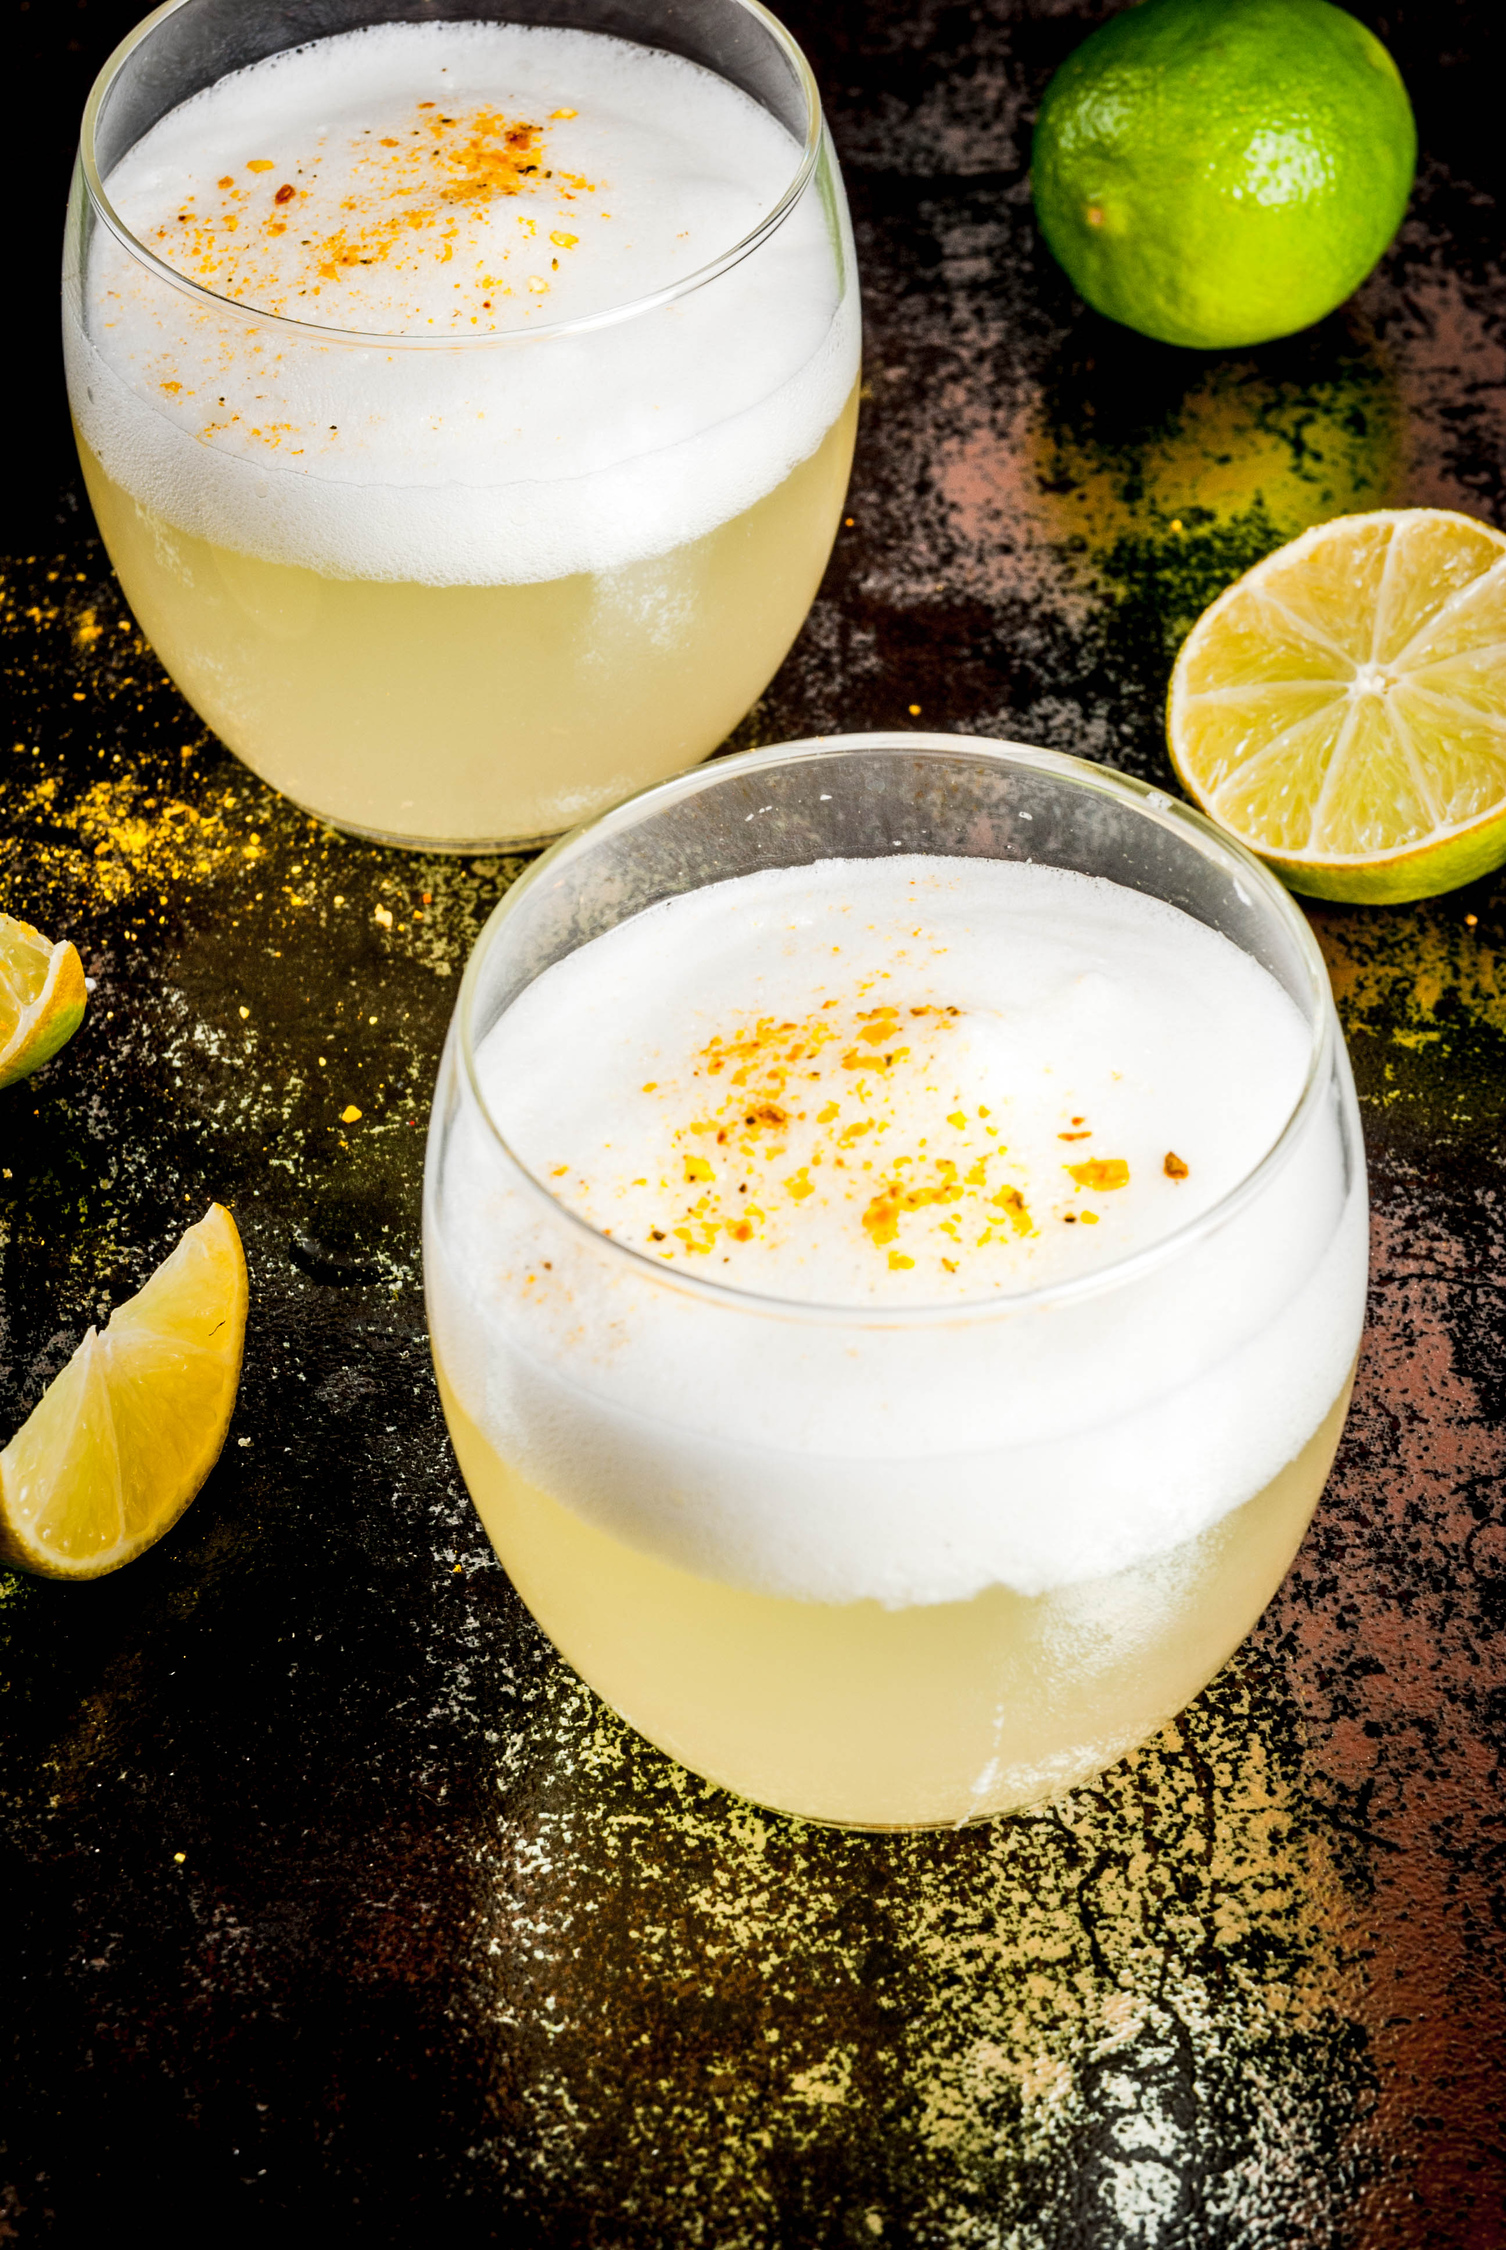 Pisco sour one of the best cocktails around the world on a dark background with lemons